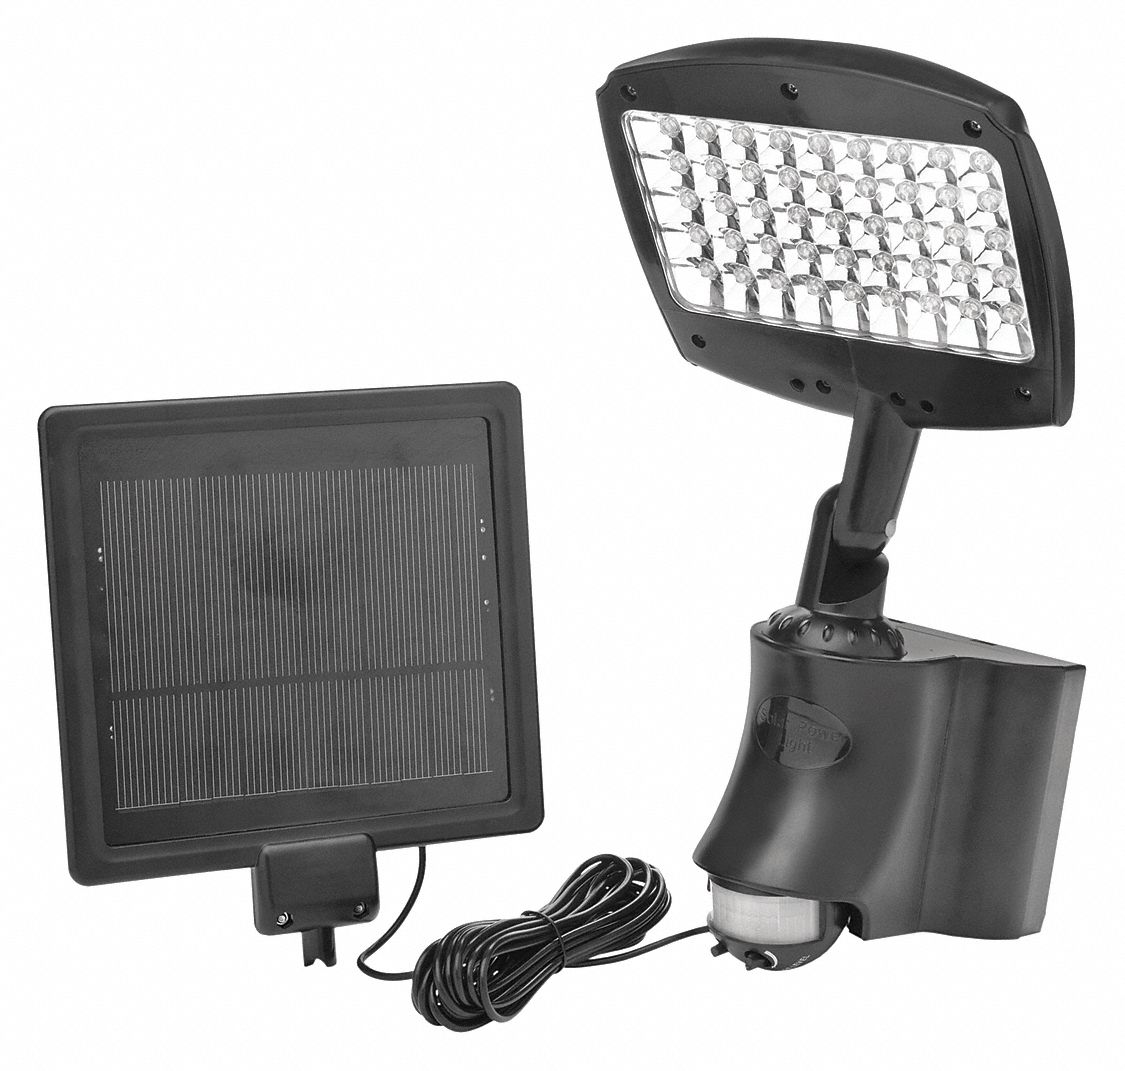 Solar Light,  6,500 K Color Temperature,  270 lm,  13.5 W Fixture Wattage,  3.6V DC